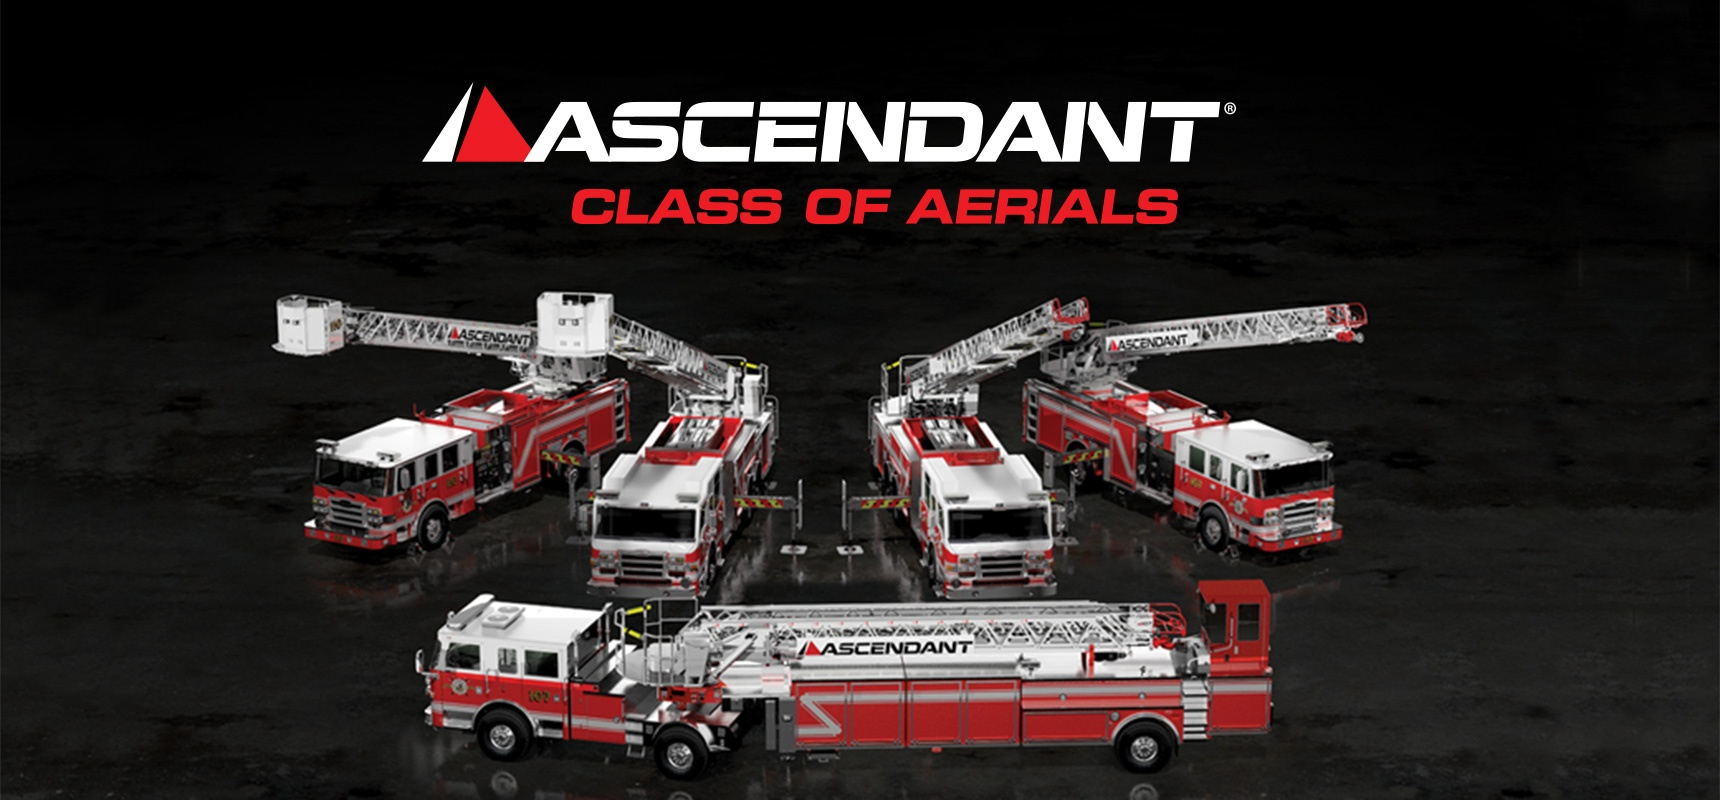 Pierce Ascendant Class Of Aerials Are Introduced At Fire ...